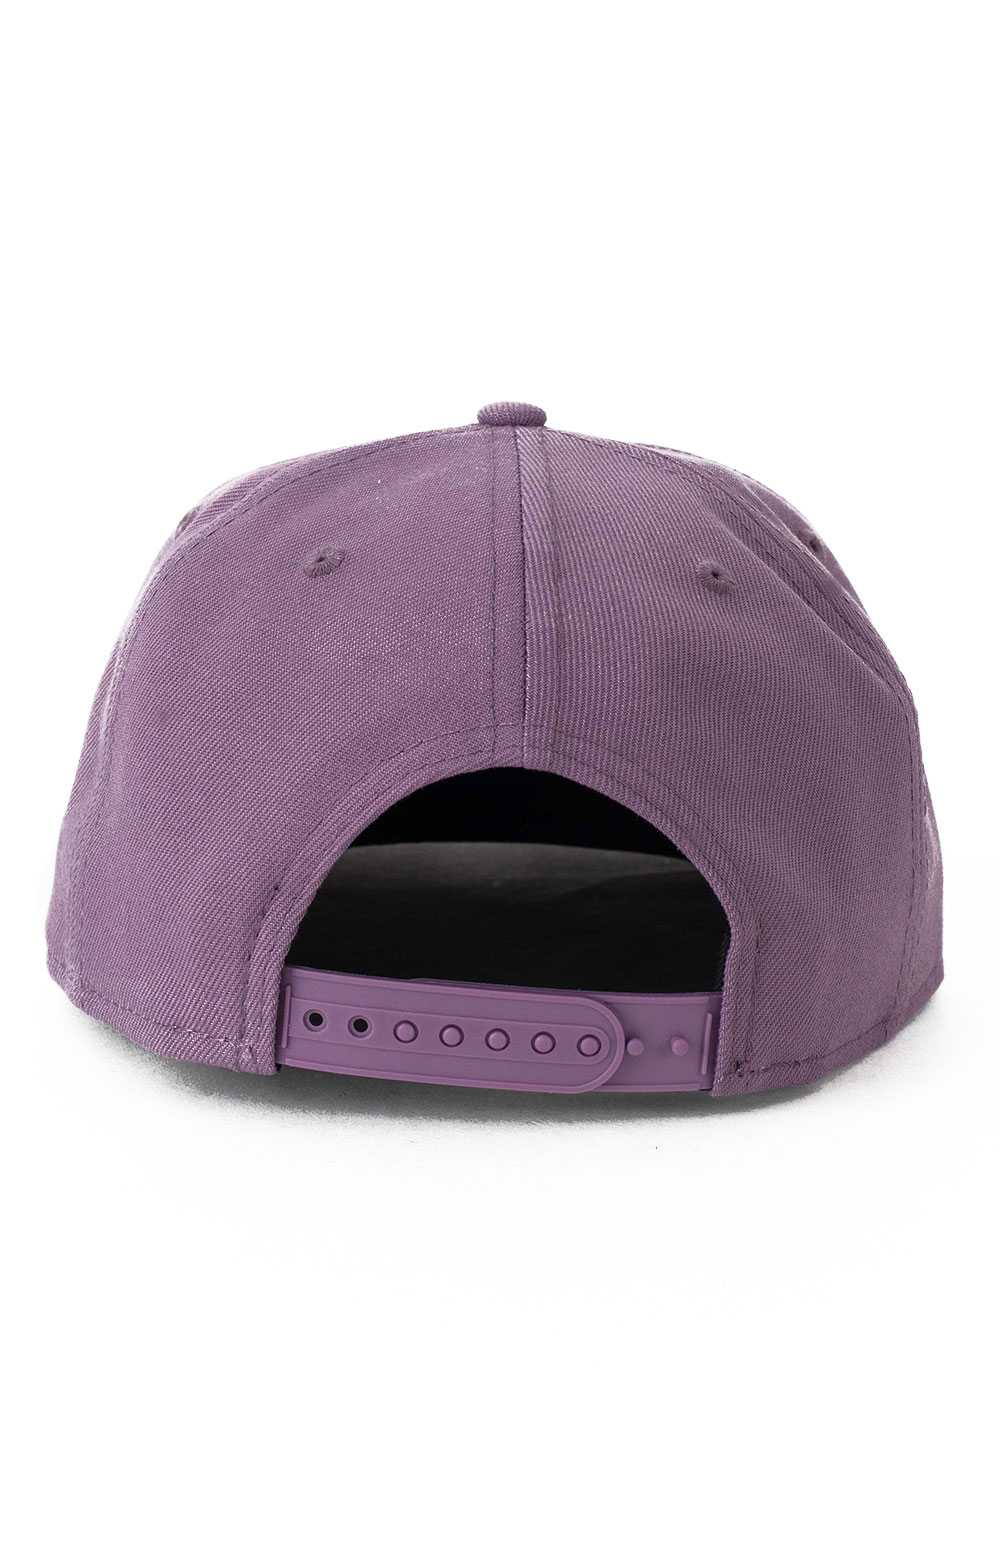 9Fifty Color Pack Snap-Back Hat - NY Yankees Purple  3